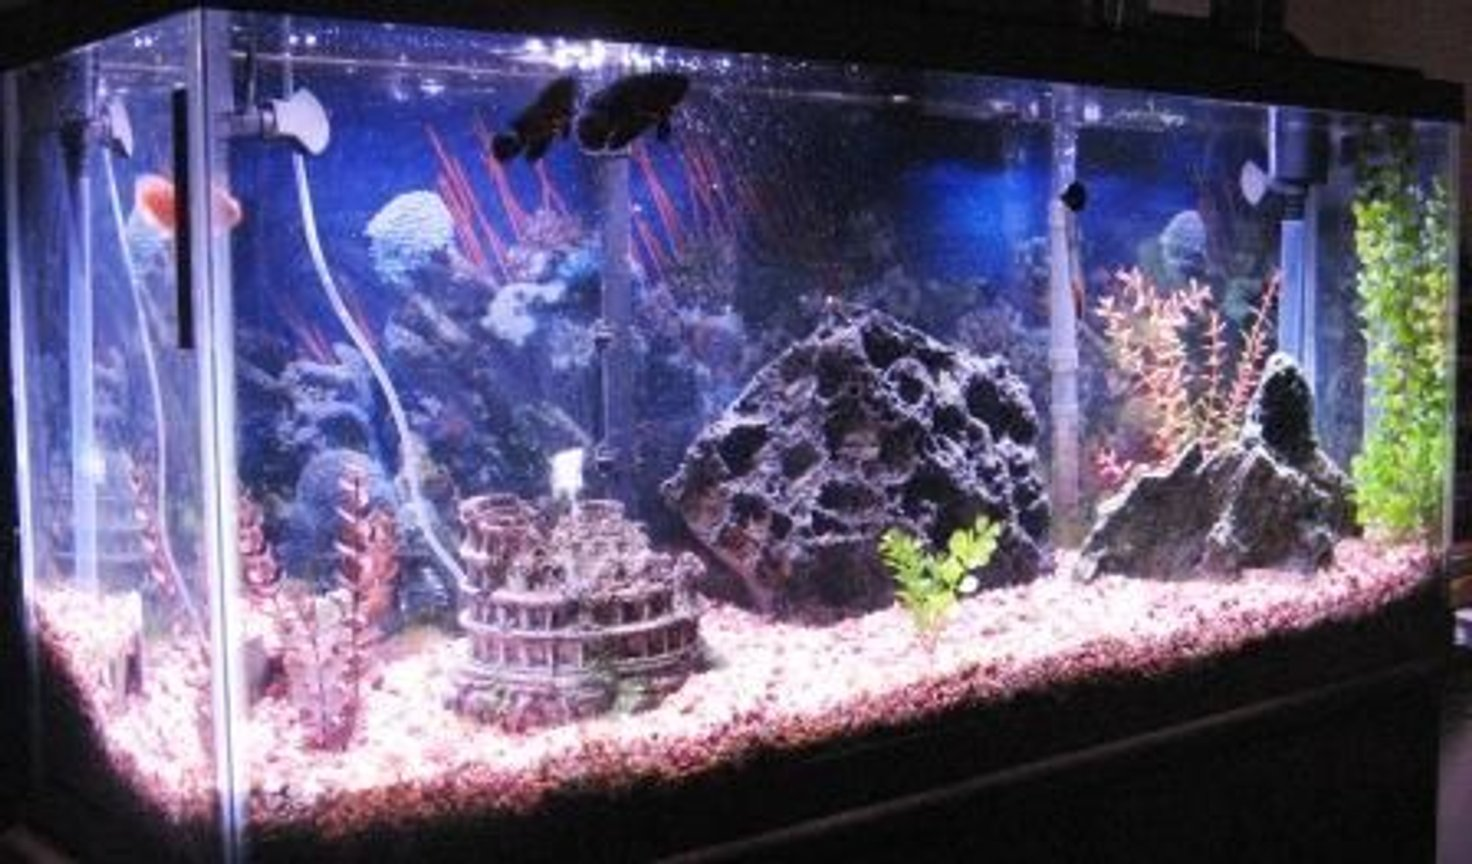 55 gallons freshwater fish tank (mostly fish and non-living decorations) - Tank has undergravel filter with 2 Penguin 550 powerheads. One on each corner, also with a 60 gallon chemical filter that hangs on the back of the tank. 200 watt stealth heater.